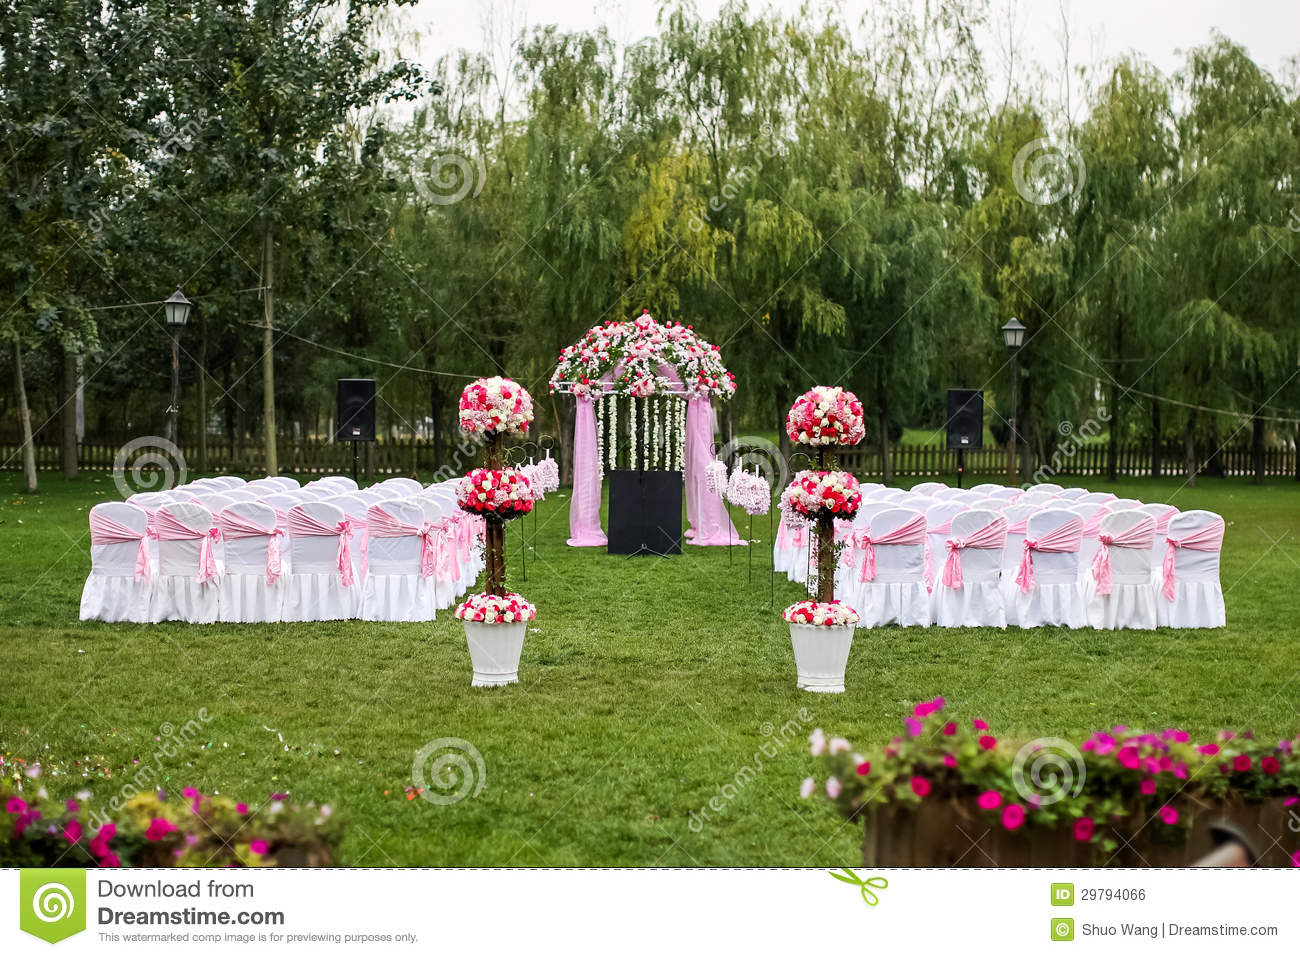 green lawn chairs revolving chair base with wheels outdoor wedding scene stock photo. image of chair, business - 29794066